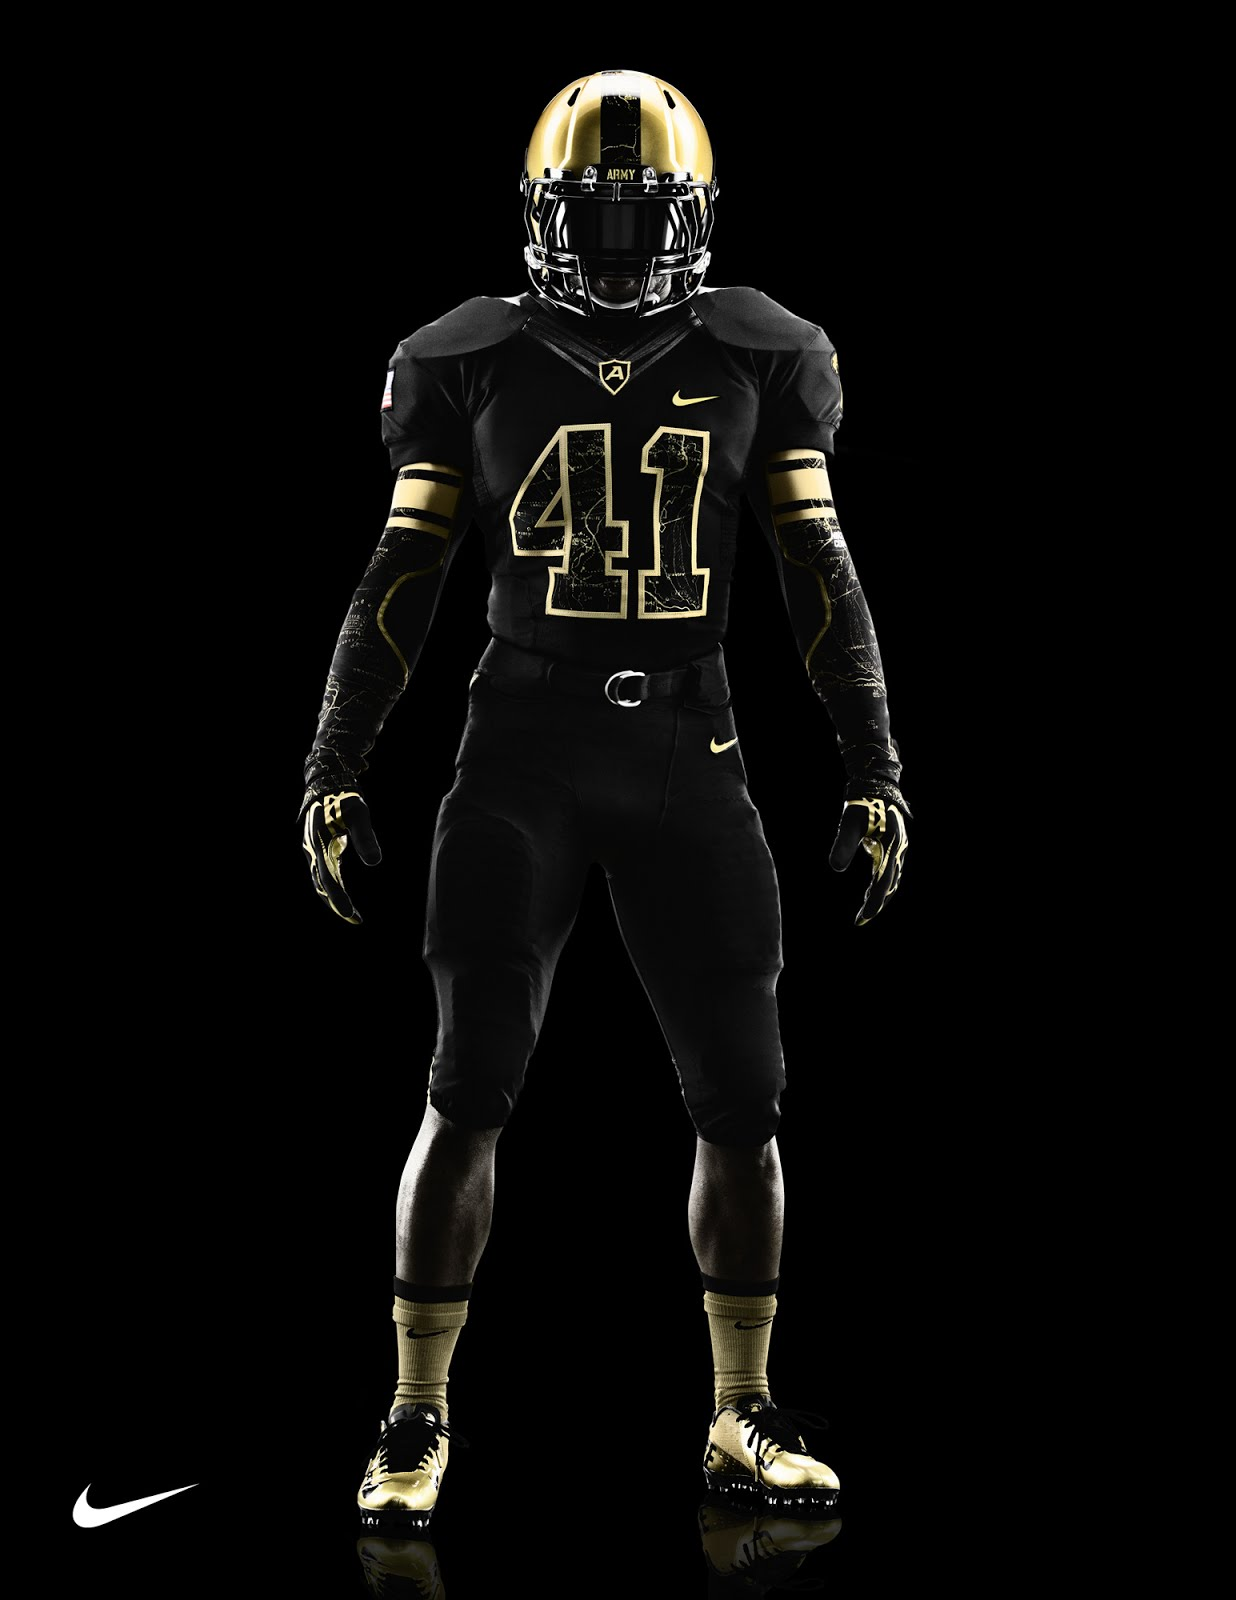 Awesome new Army and Navy football uniforms by Nike